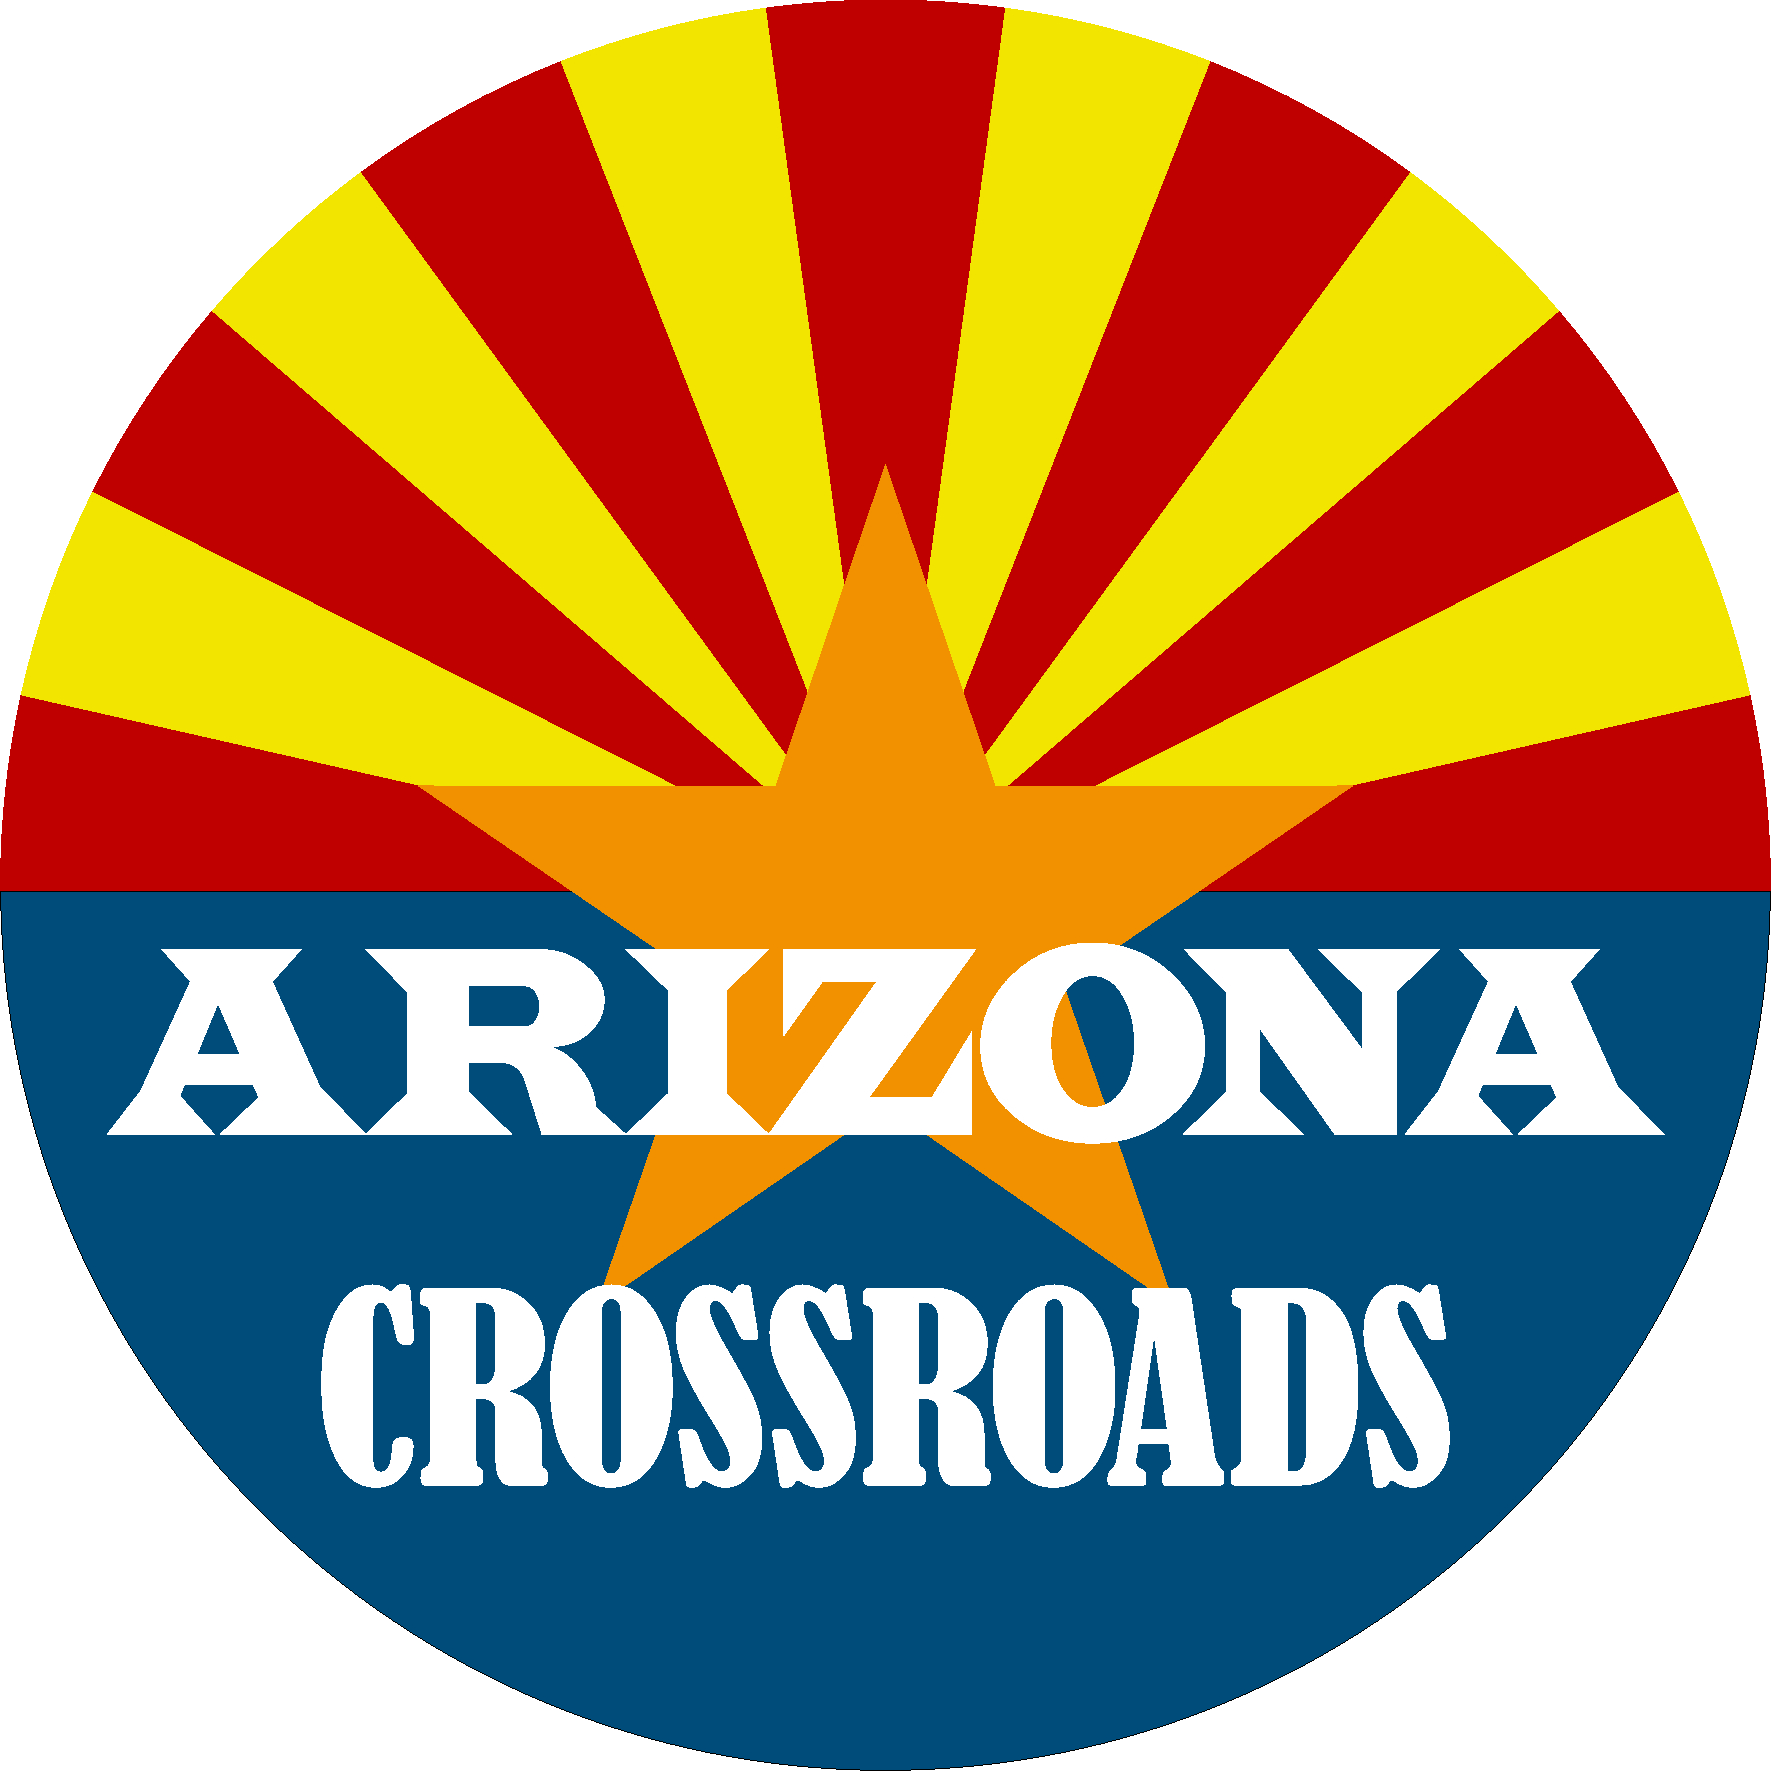 Arizona Crossroads - Welcome